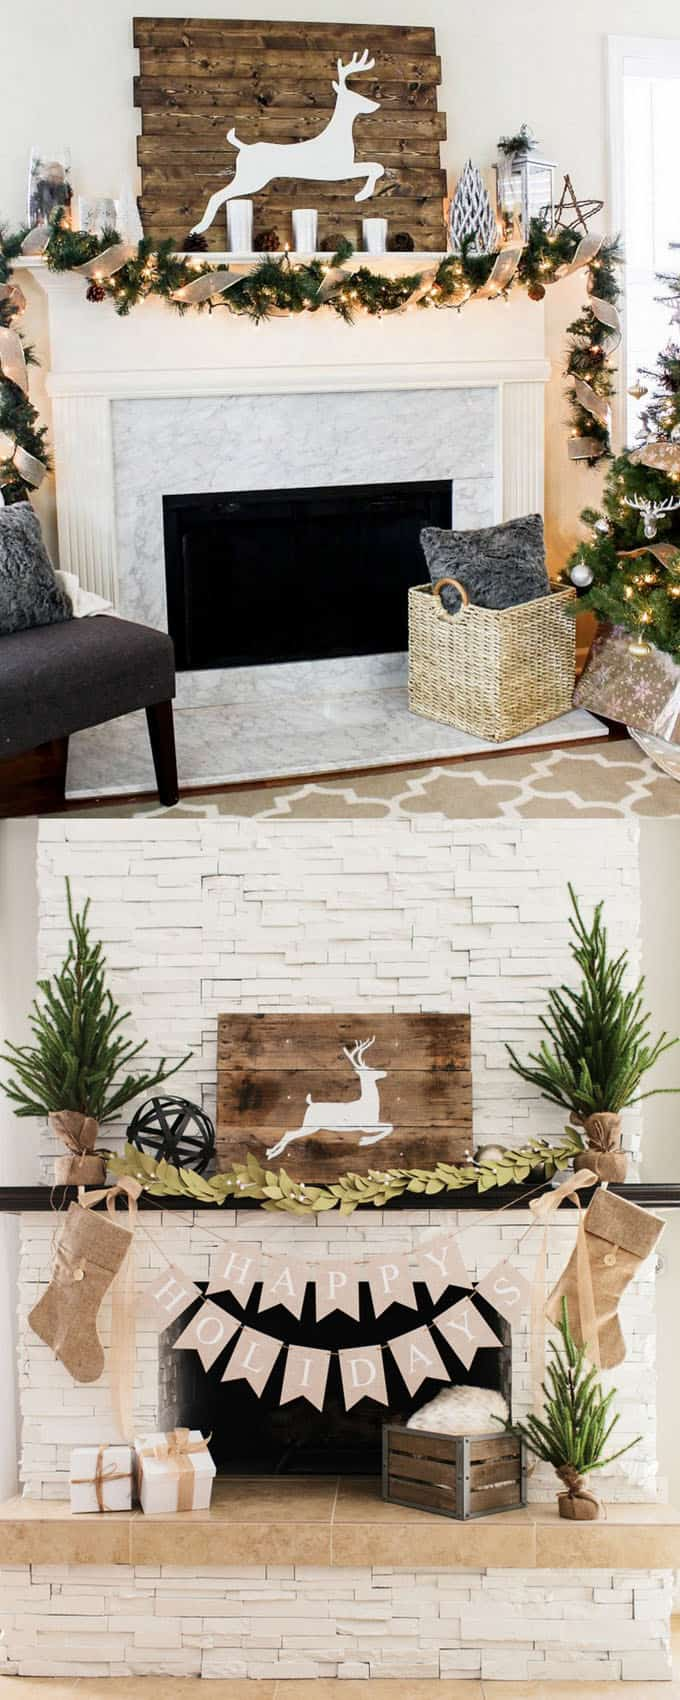 Woodland Christmas fireplace decorations & 100+ Favorite Christmas Decorating Ideas For Every Room in Your Home ...